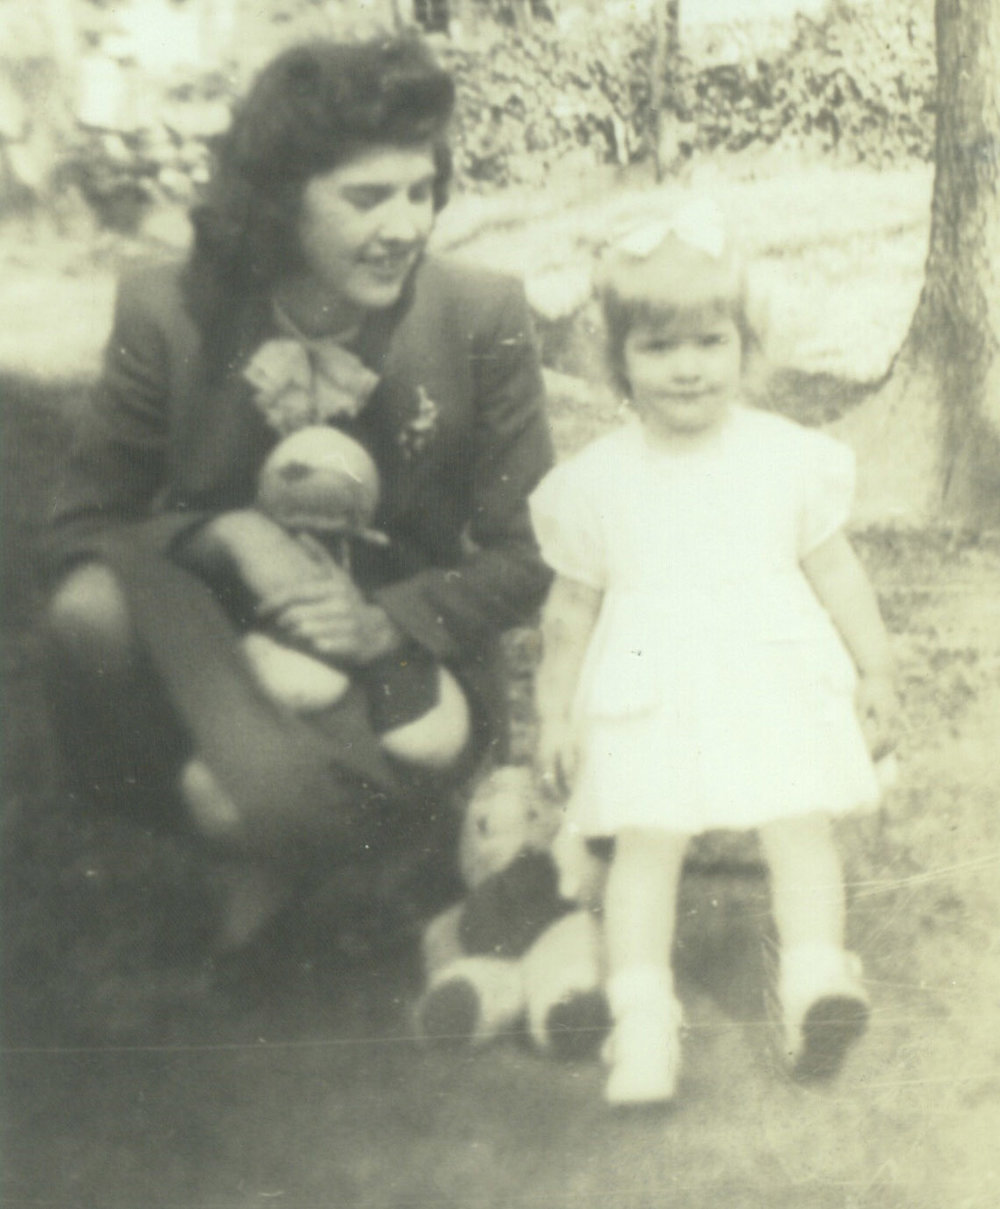 My mother and I in 1945 with the rag doll and my teddy bear.